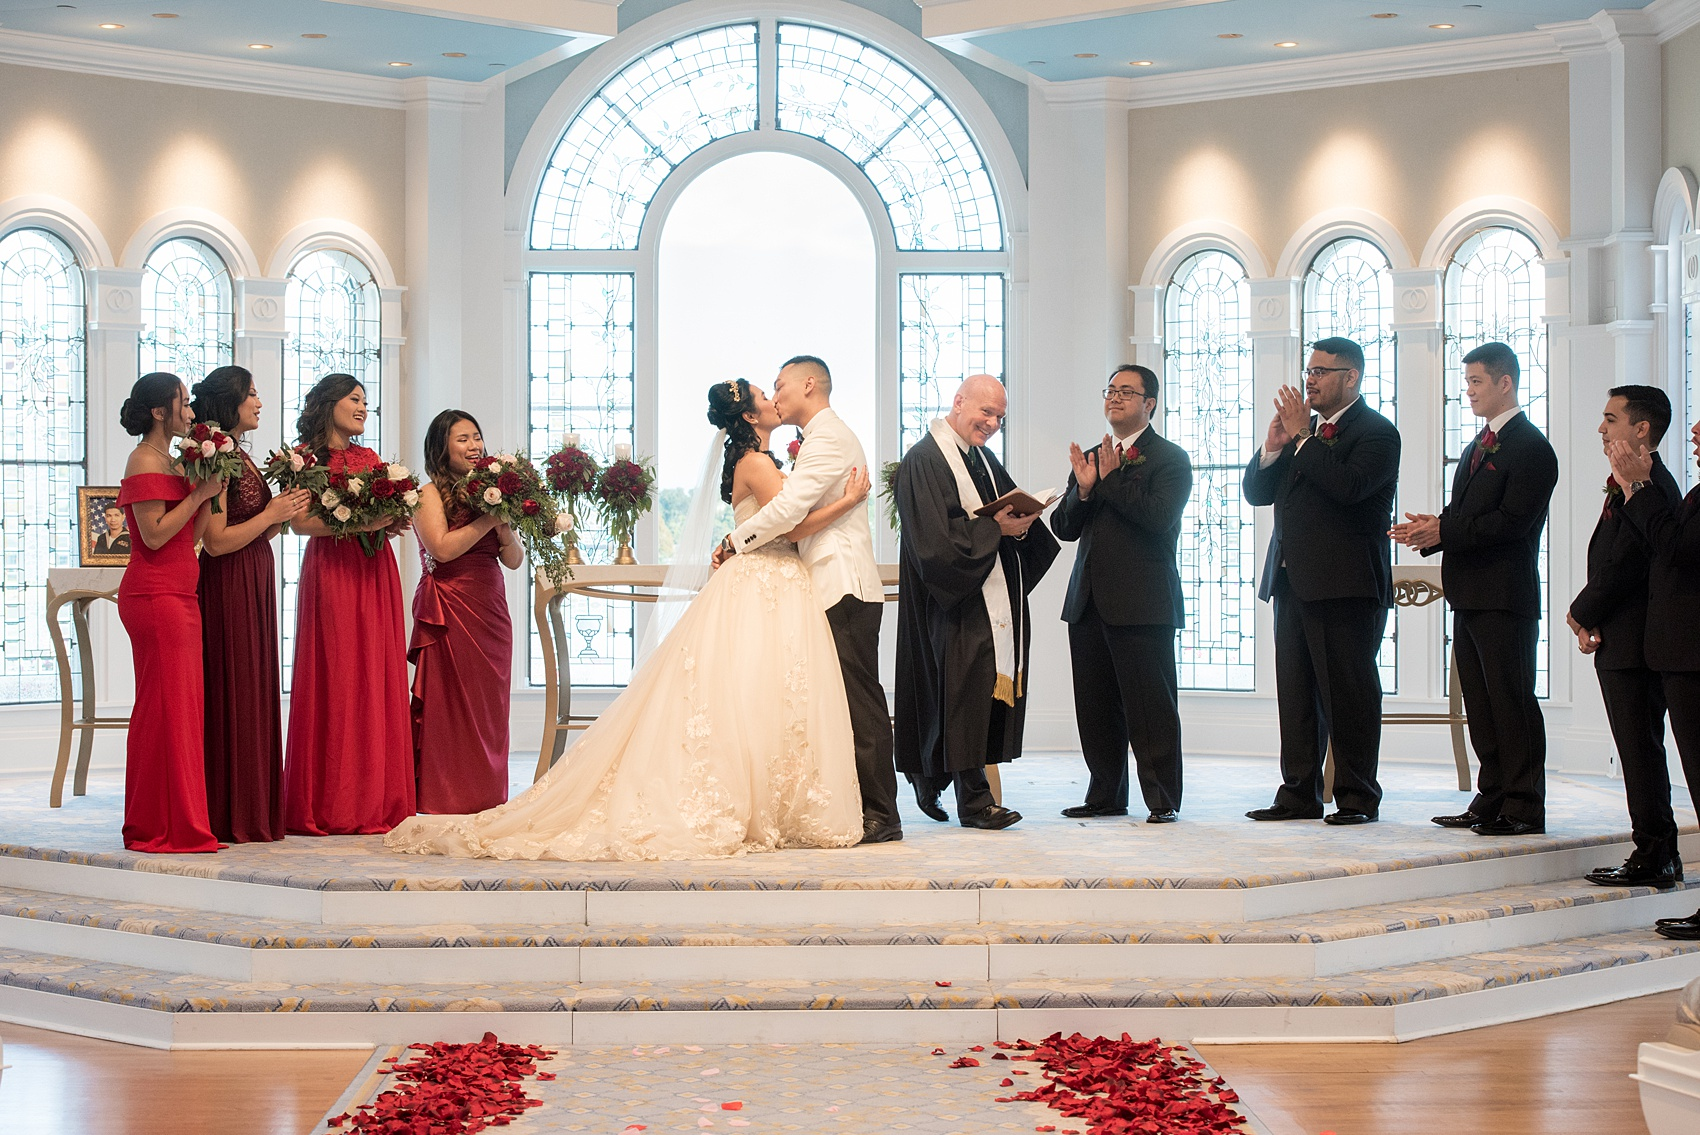 Photographs of a Walt Disney World wedding by Mikkel Paige Photography will give you ideas for a tasteful Beauty and the Beast theme. There was a glass dome with a red rose inside at the start of the ceremony with red rose petals scattered down the aisle for a small, intimate guest list at the Wedding Pavilion next to the Grand Floridian resort. #disneywedding #disneybride #waltdisneyworld #DisneyWorldWedding #DisneyCeremony #DisneyWorldWeddingPavilion